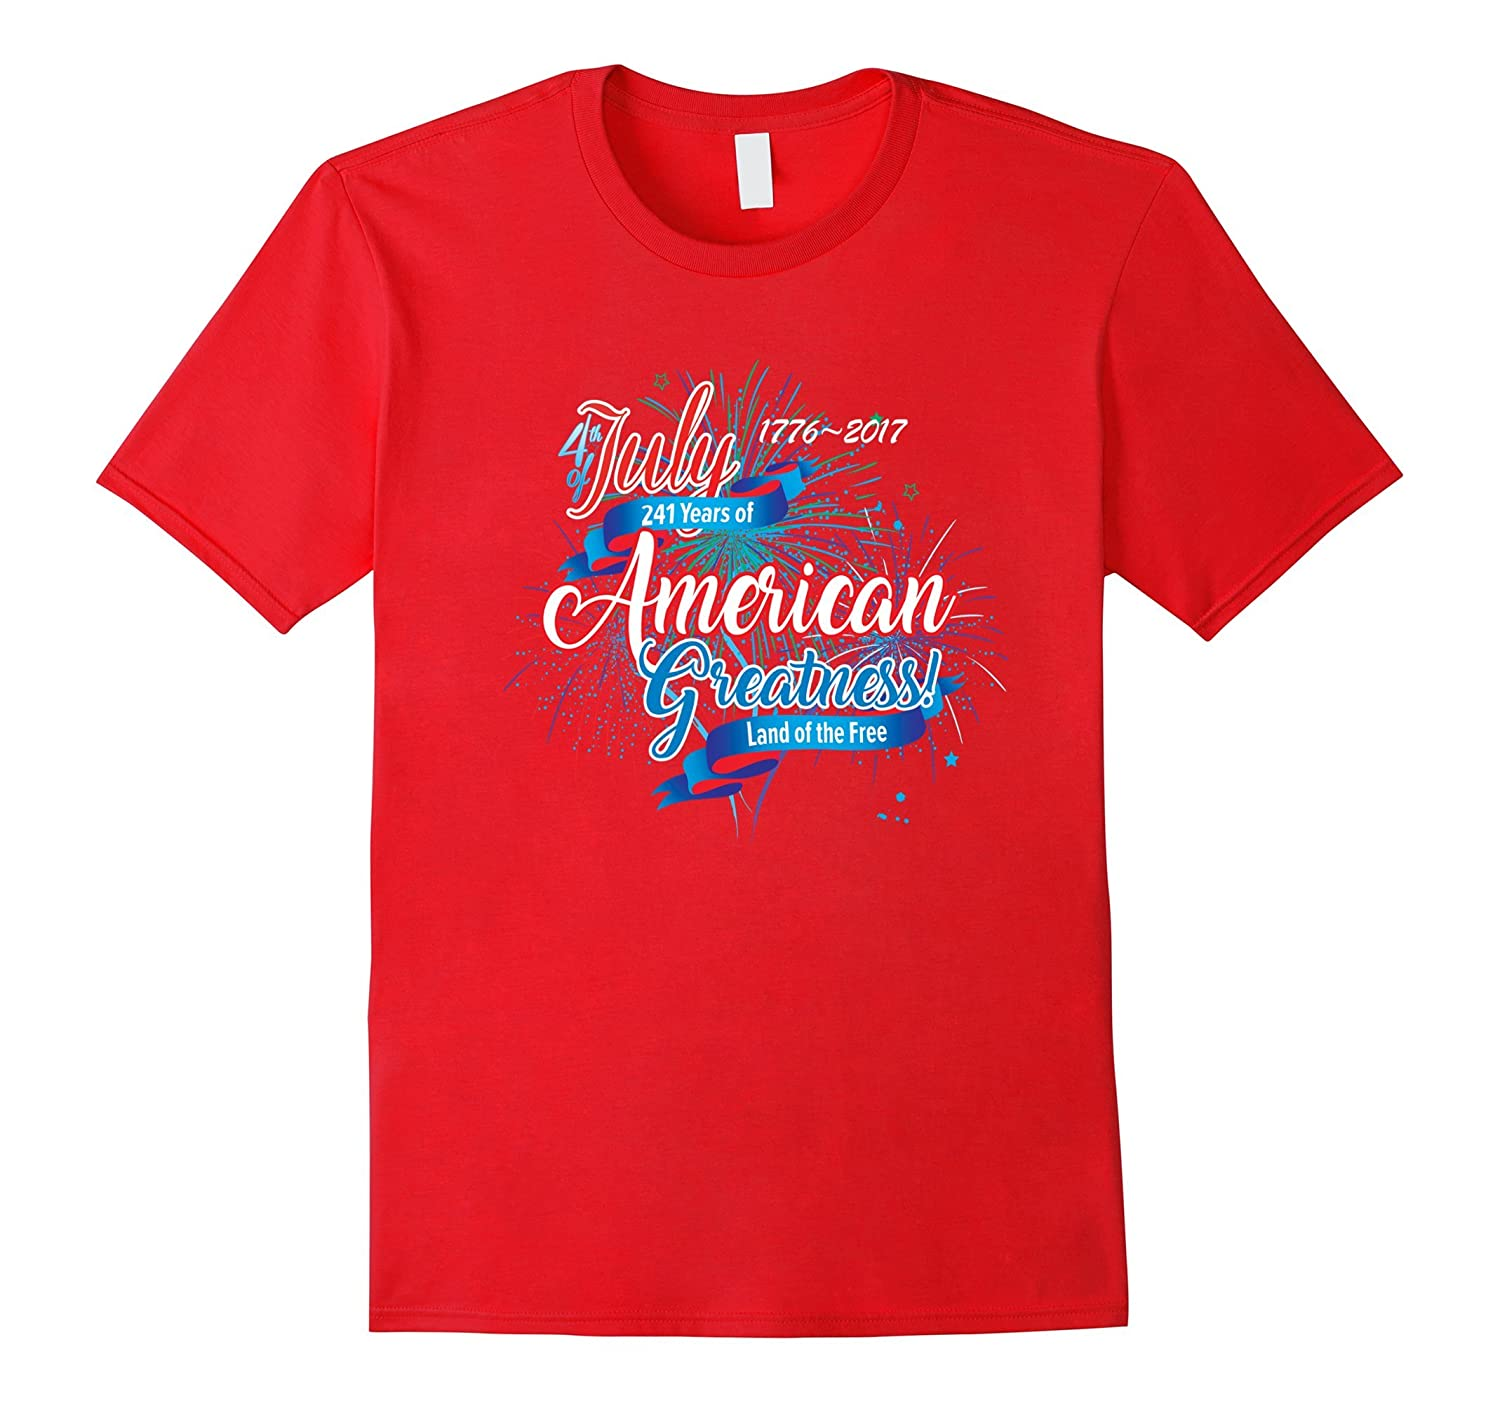 4th of July 1776-2017 241 Years American Greatness T-Shirt-Vaci